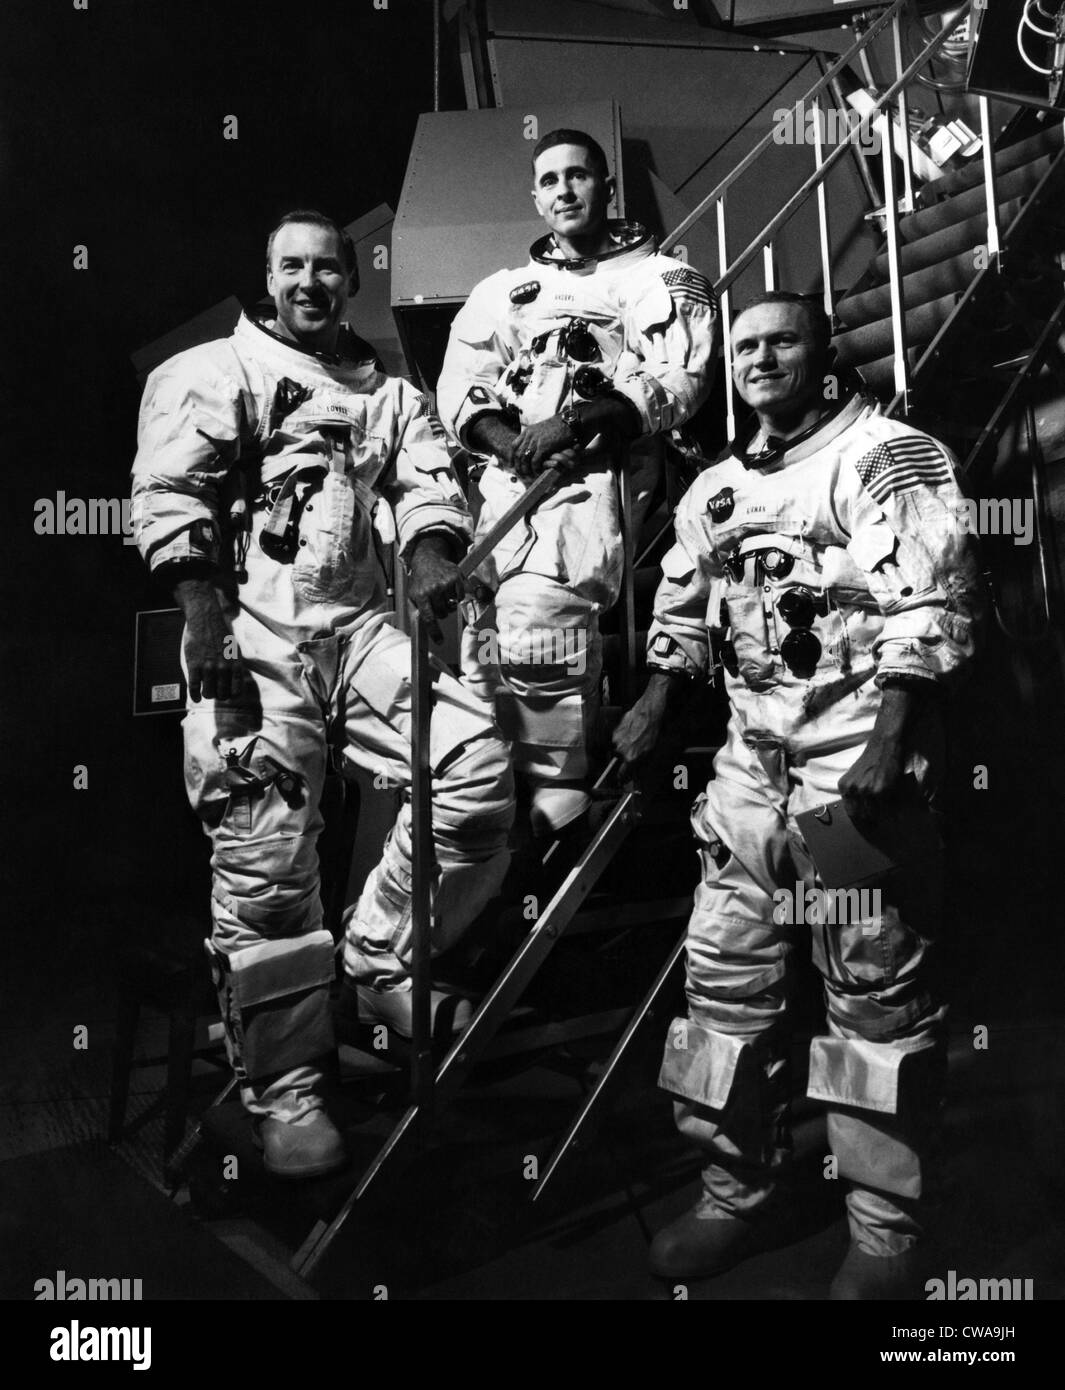 The crew for the Apollo 8 spacecraft L-R: James A. Lovell Jr., William A. Anders, Frank Borman, 1968.. Courtesy: - Stock Image